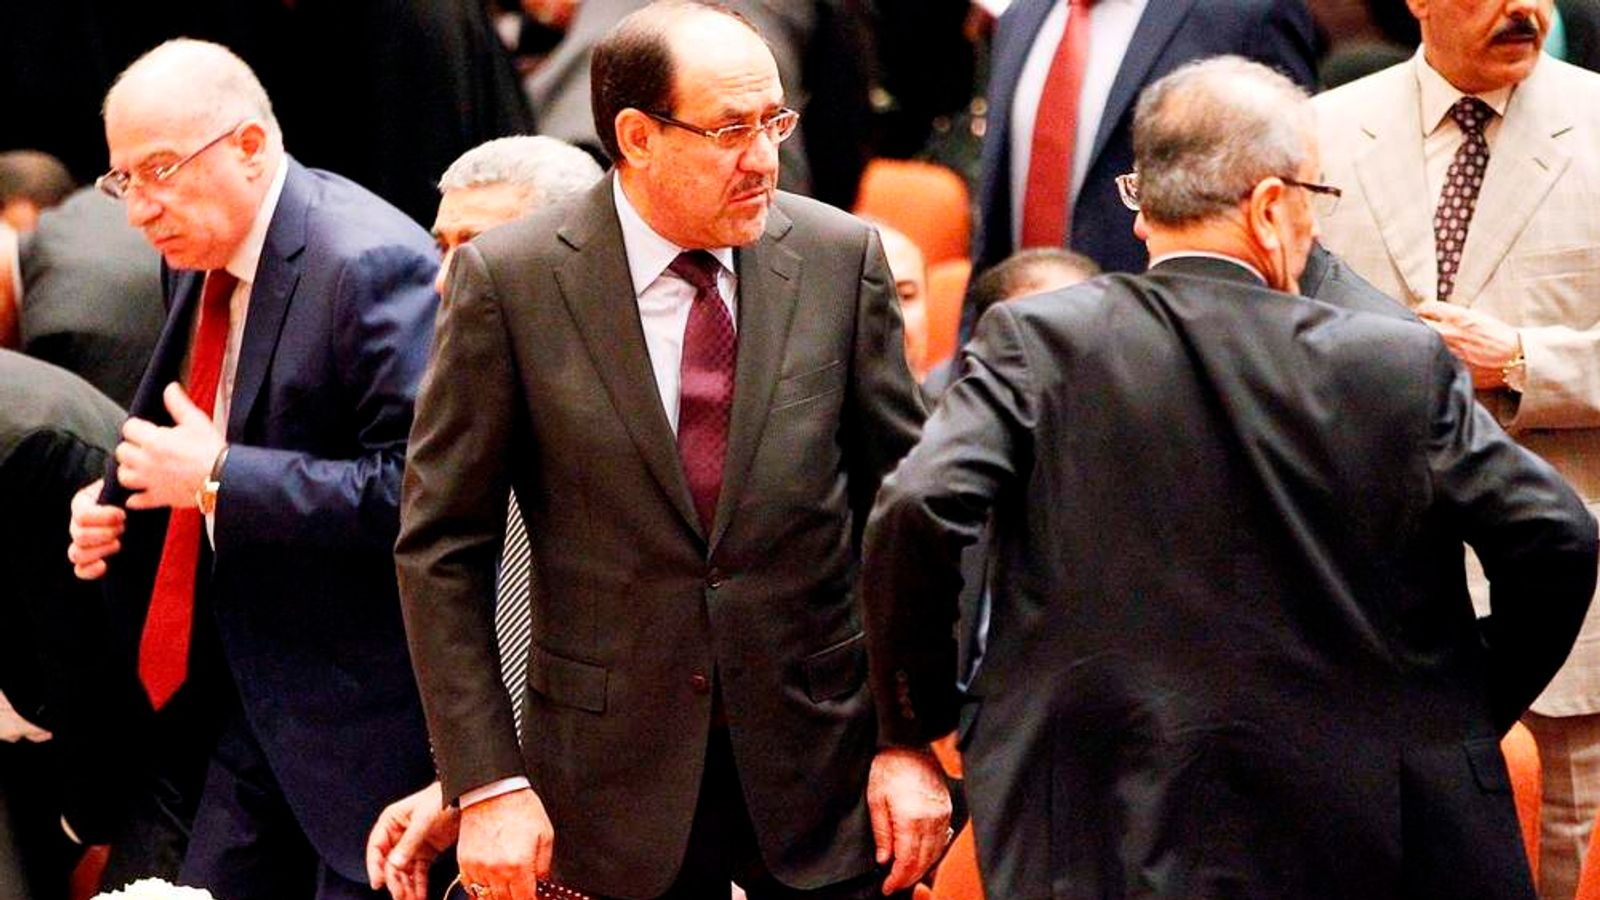 Iraqi PM Nuri al-Maliki (c) with colleagues in parliament